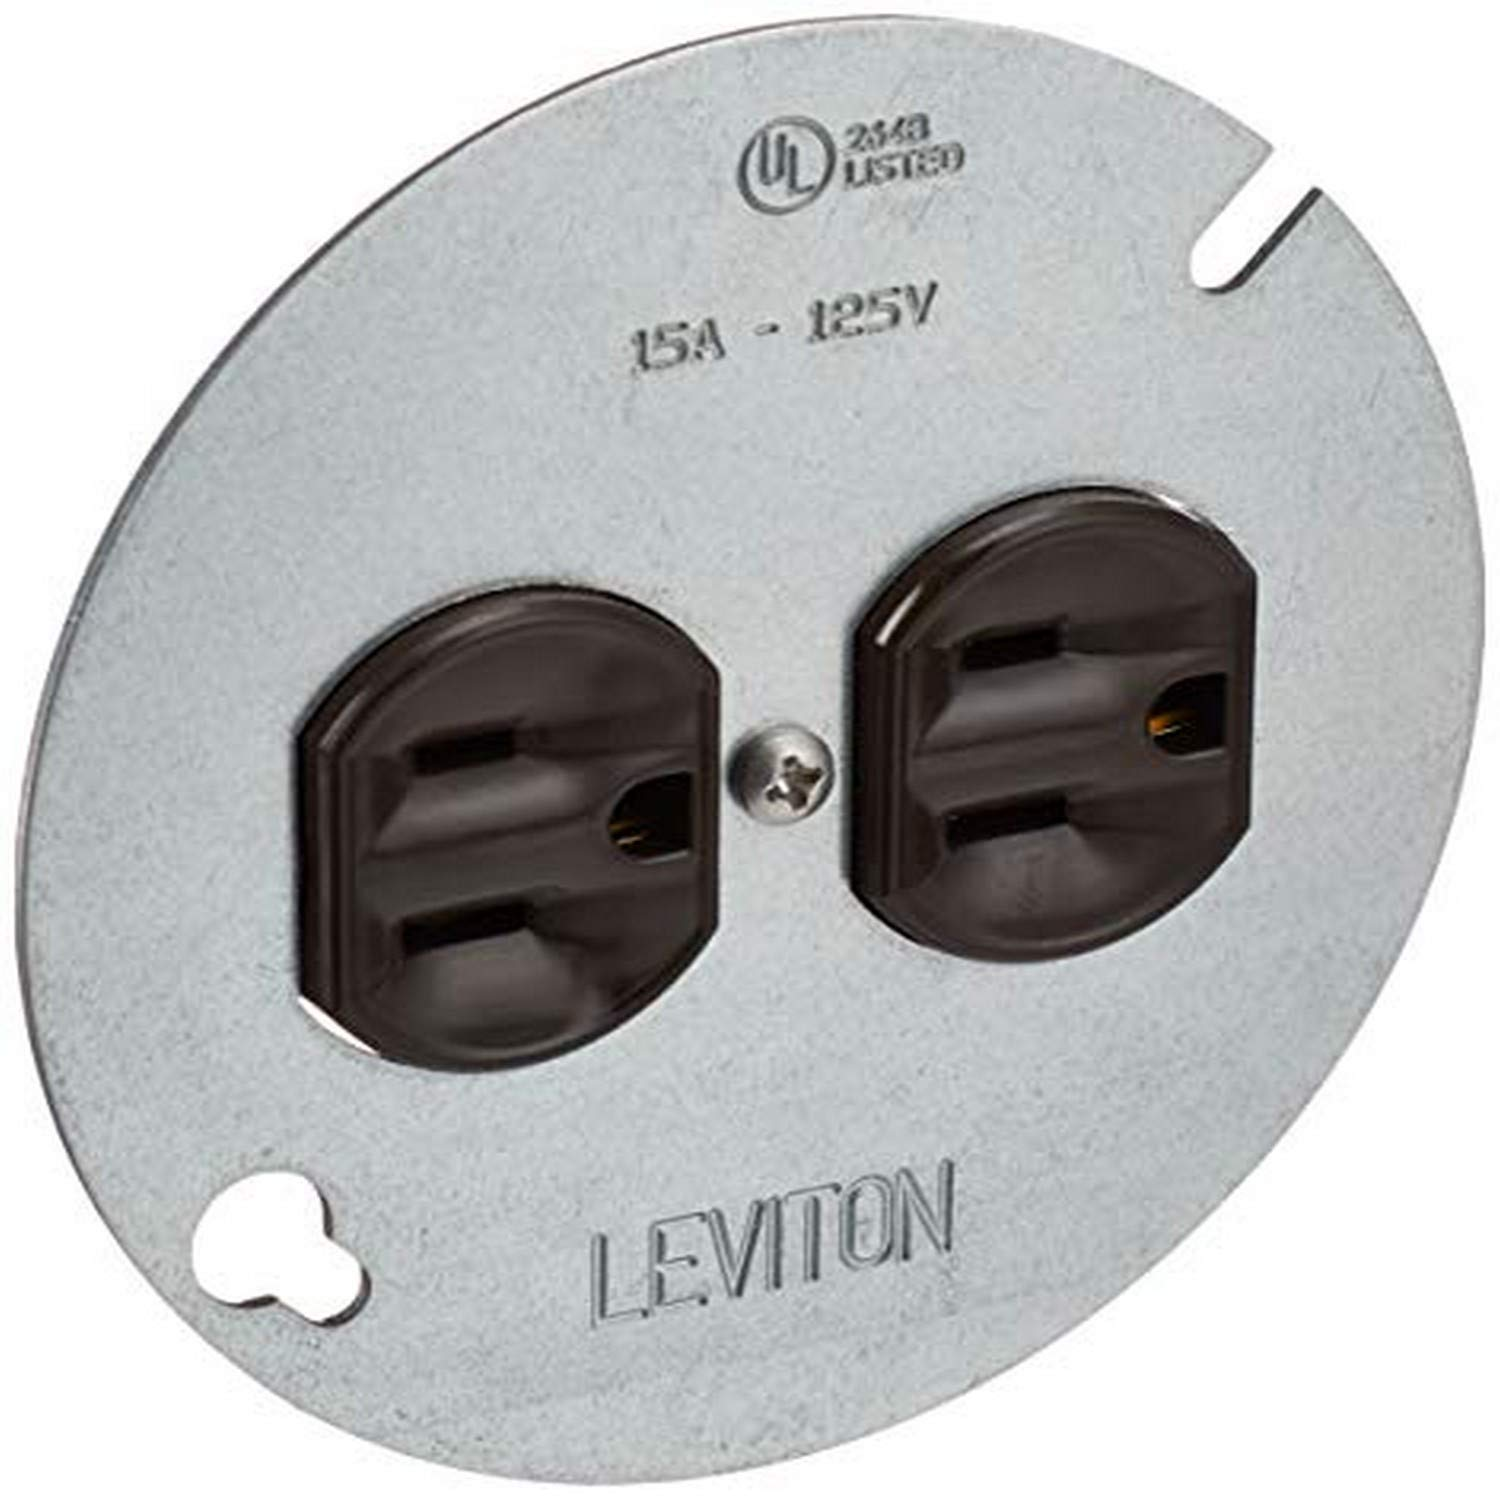 "Leviton 1228 15 Amp 125 Volt, Duplex Receptacle, with 4"" Metal Cover, Residential Grade, Grounding, Brown"